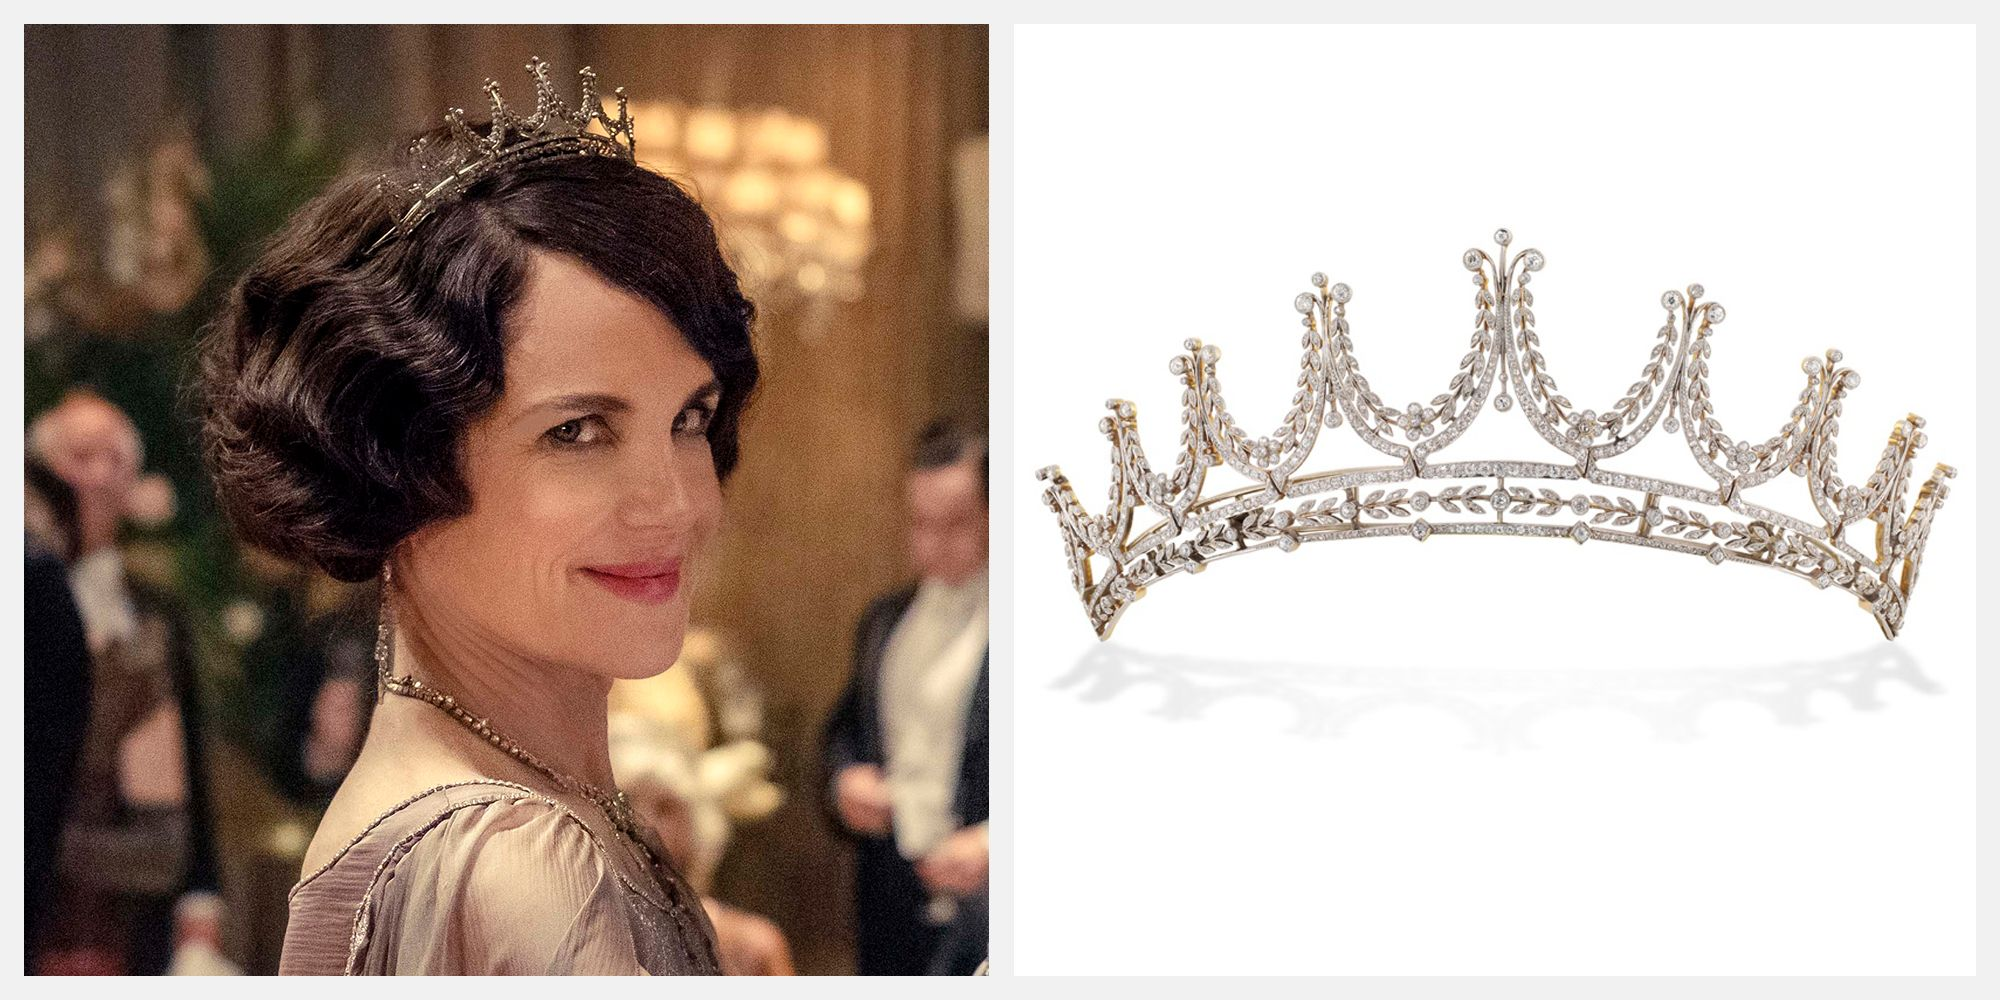 The Tiaras in the Downton Abbey Movie Are Based on Real Royal Tiaras